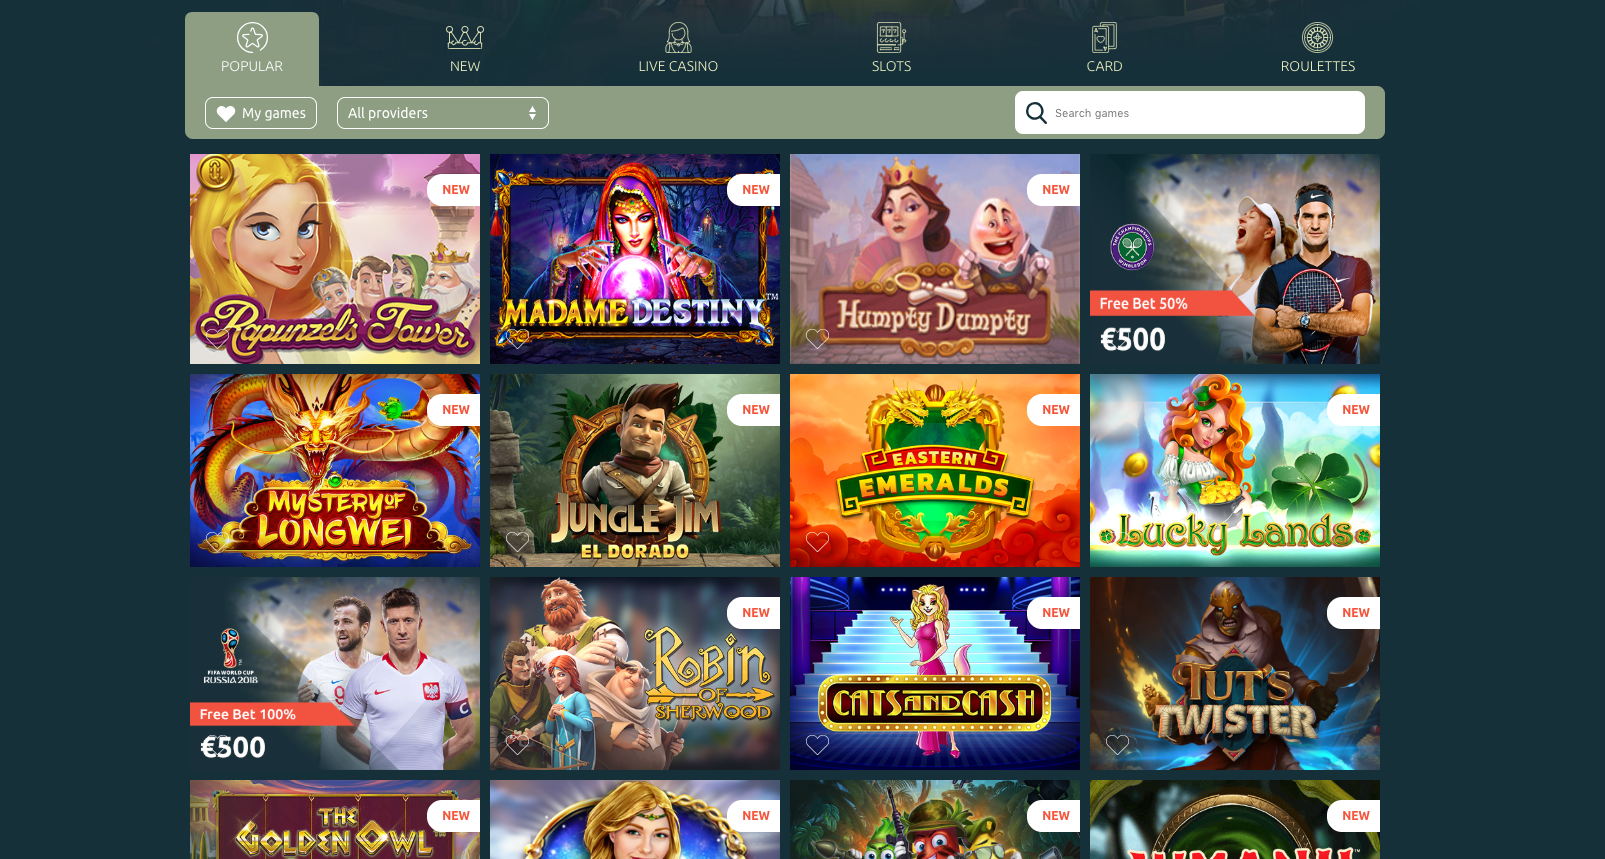 Some of the hottest games at Casinia Casino